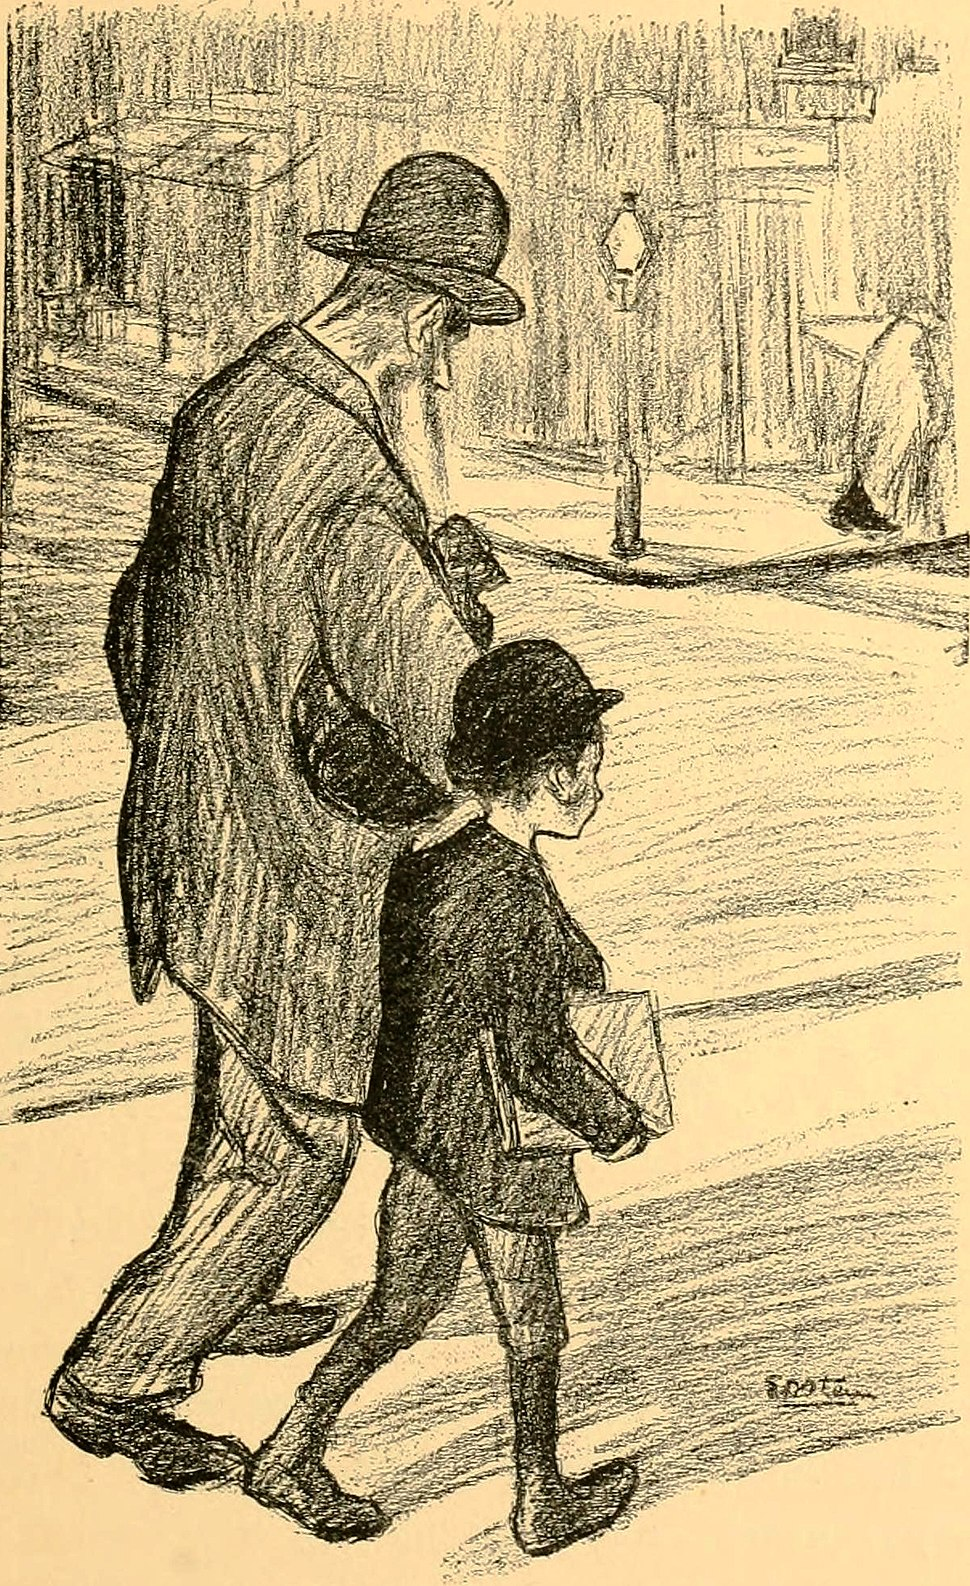 Going to the synagogue. The spirit of the Ghetto.1902